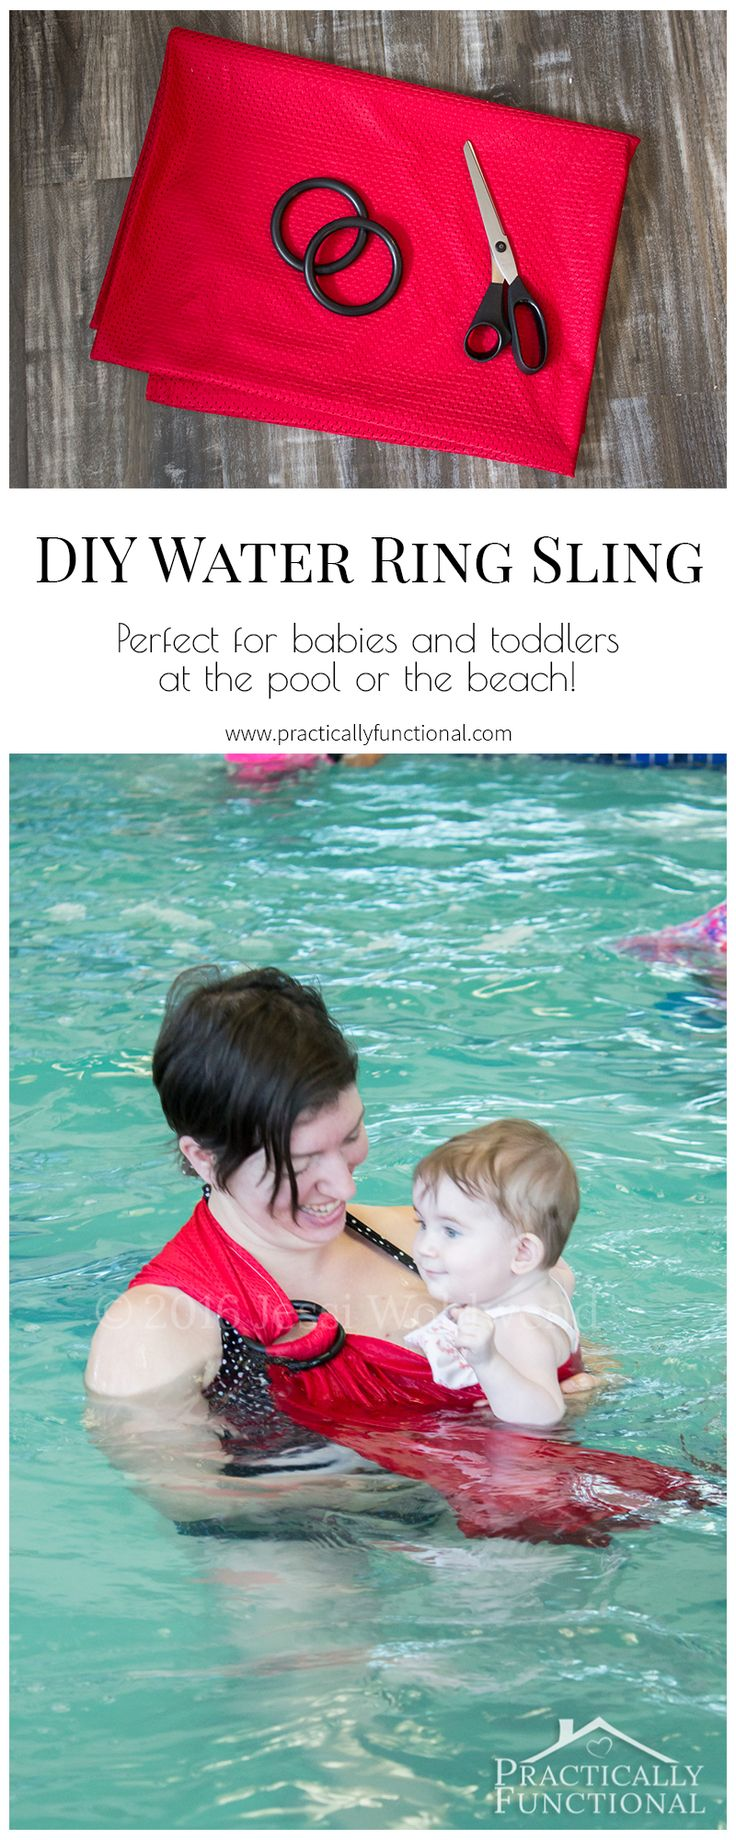 Love this DIY water ring sling! So quick and easy to make and it makes it so easy and worry free to go in the water with a baby or toddler!